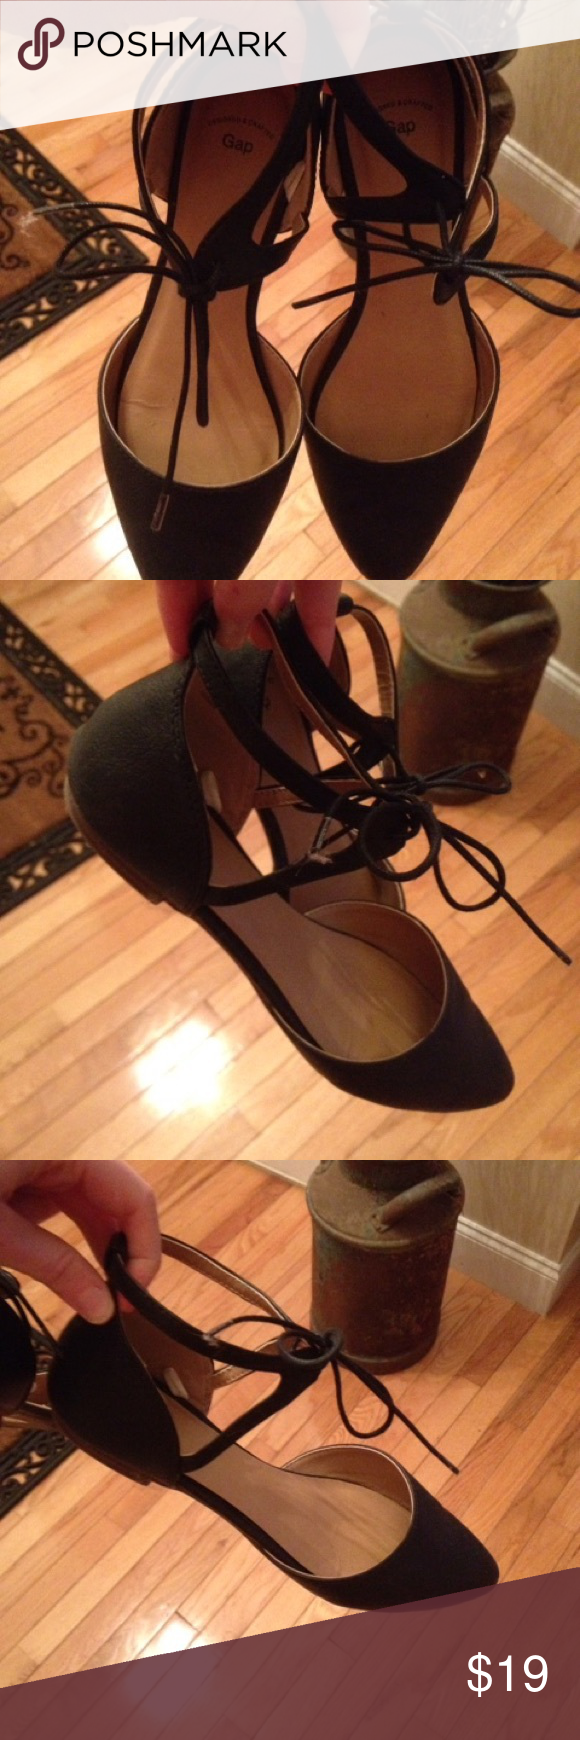 Women's size 7 black leather-like Gap sandals Good condition, worn only a few times, lace up / bow-tie top Shoes Sandals